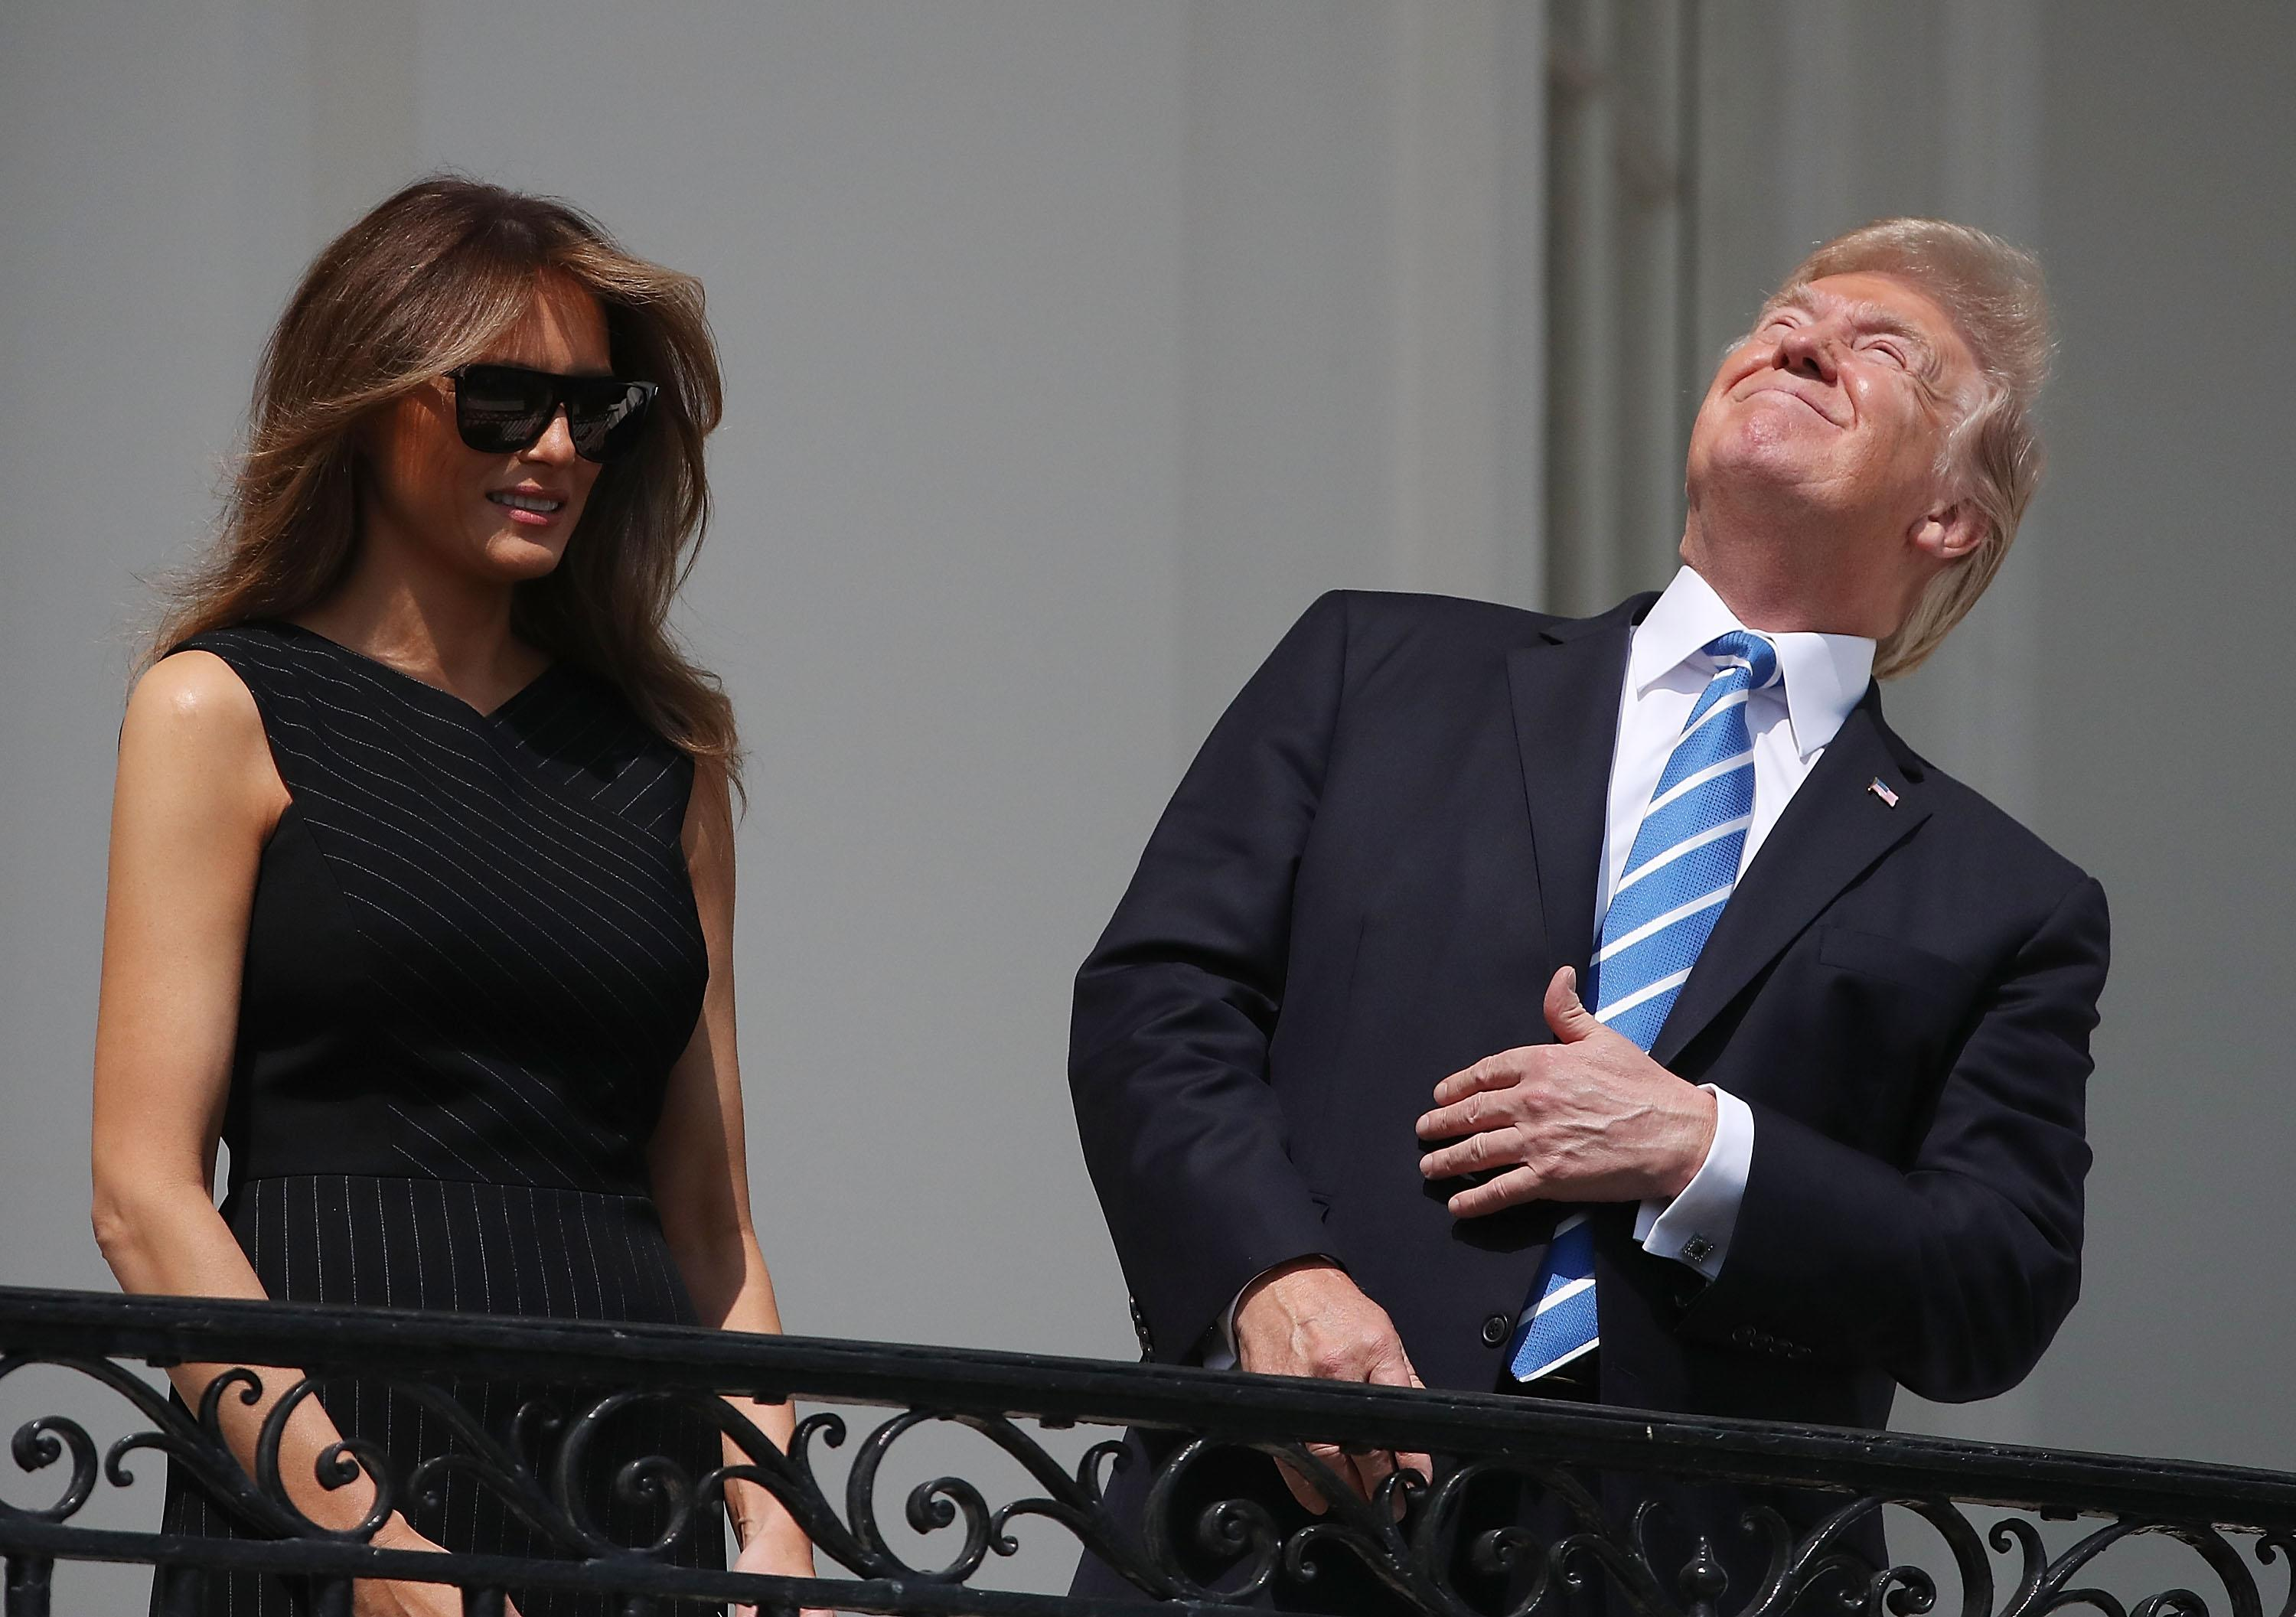 <p>President Donald Trump looks up toward the Solar Eclipse while joined by his wife first lady Melania Trump on the Truman Balcony at the White House on Aug. 21, 2017 in Washington, D.C. (Photo: Mark Wilson/Getty Images) </p>